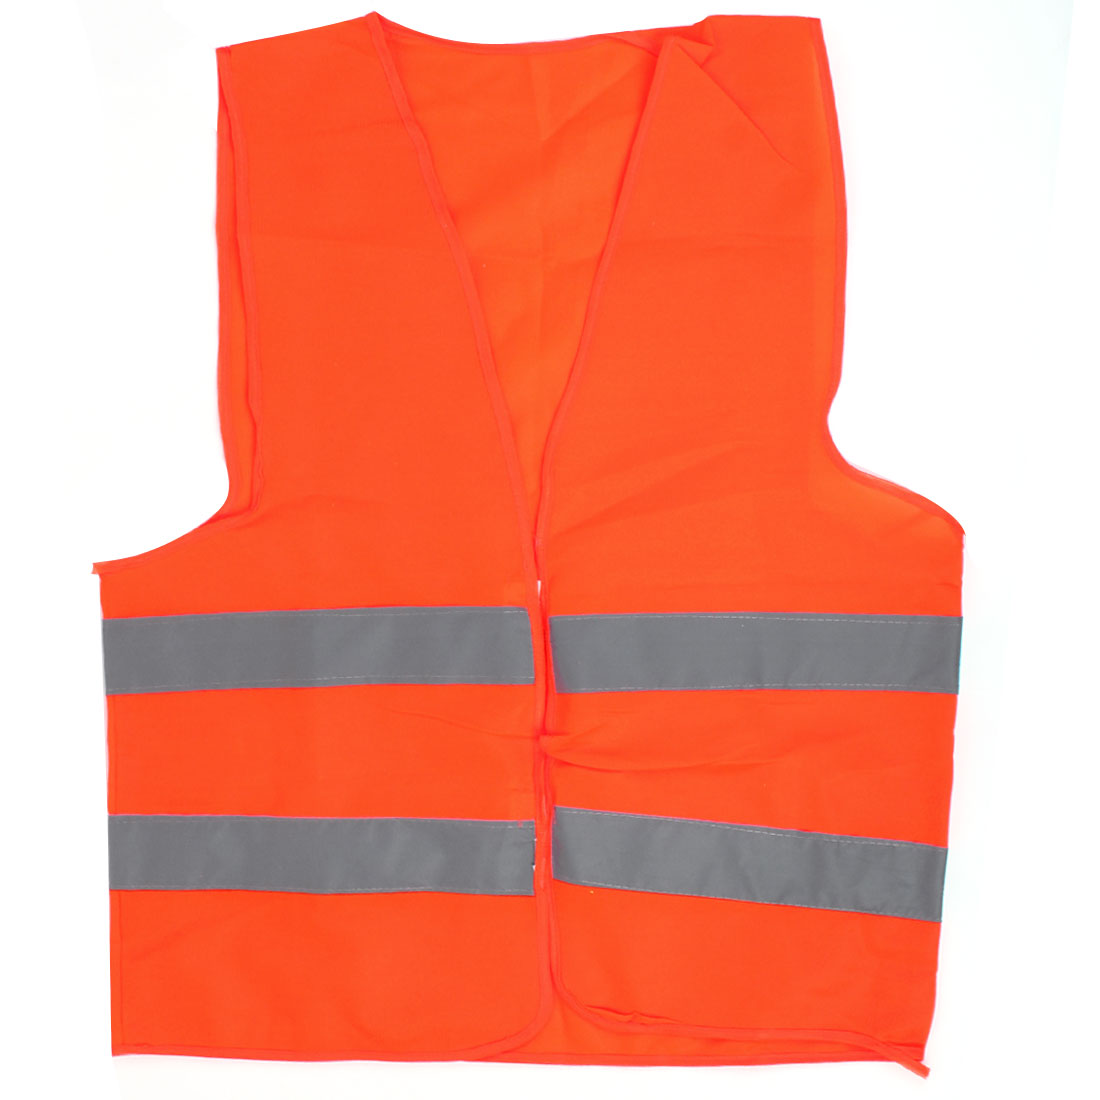 Reflective Traffic Safety Security Vest Orange Red 68cm x 57cm